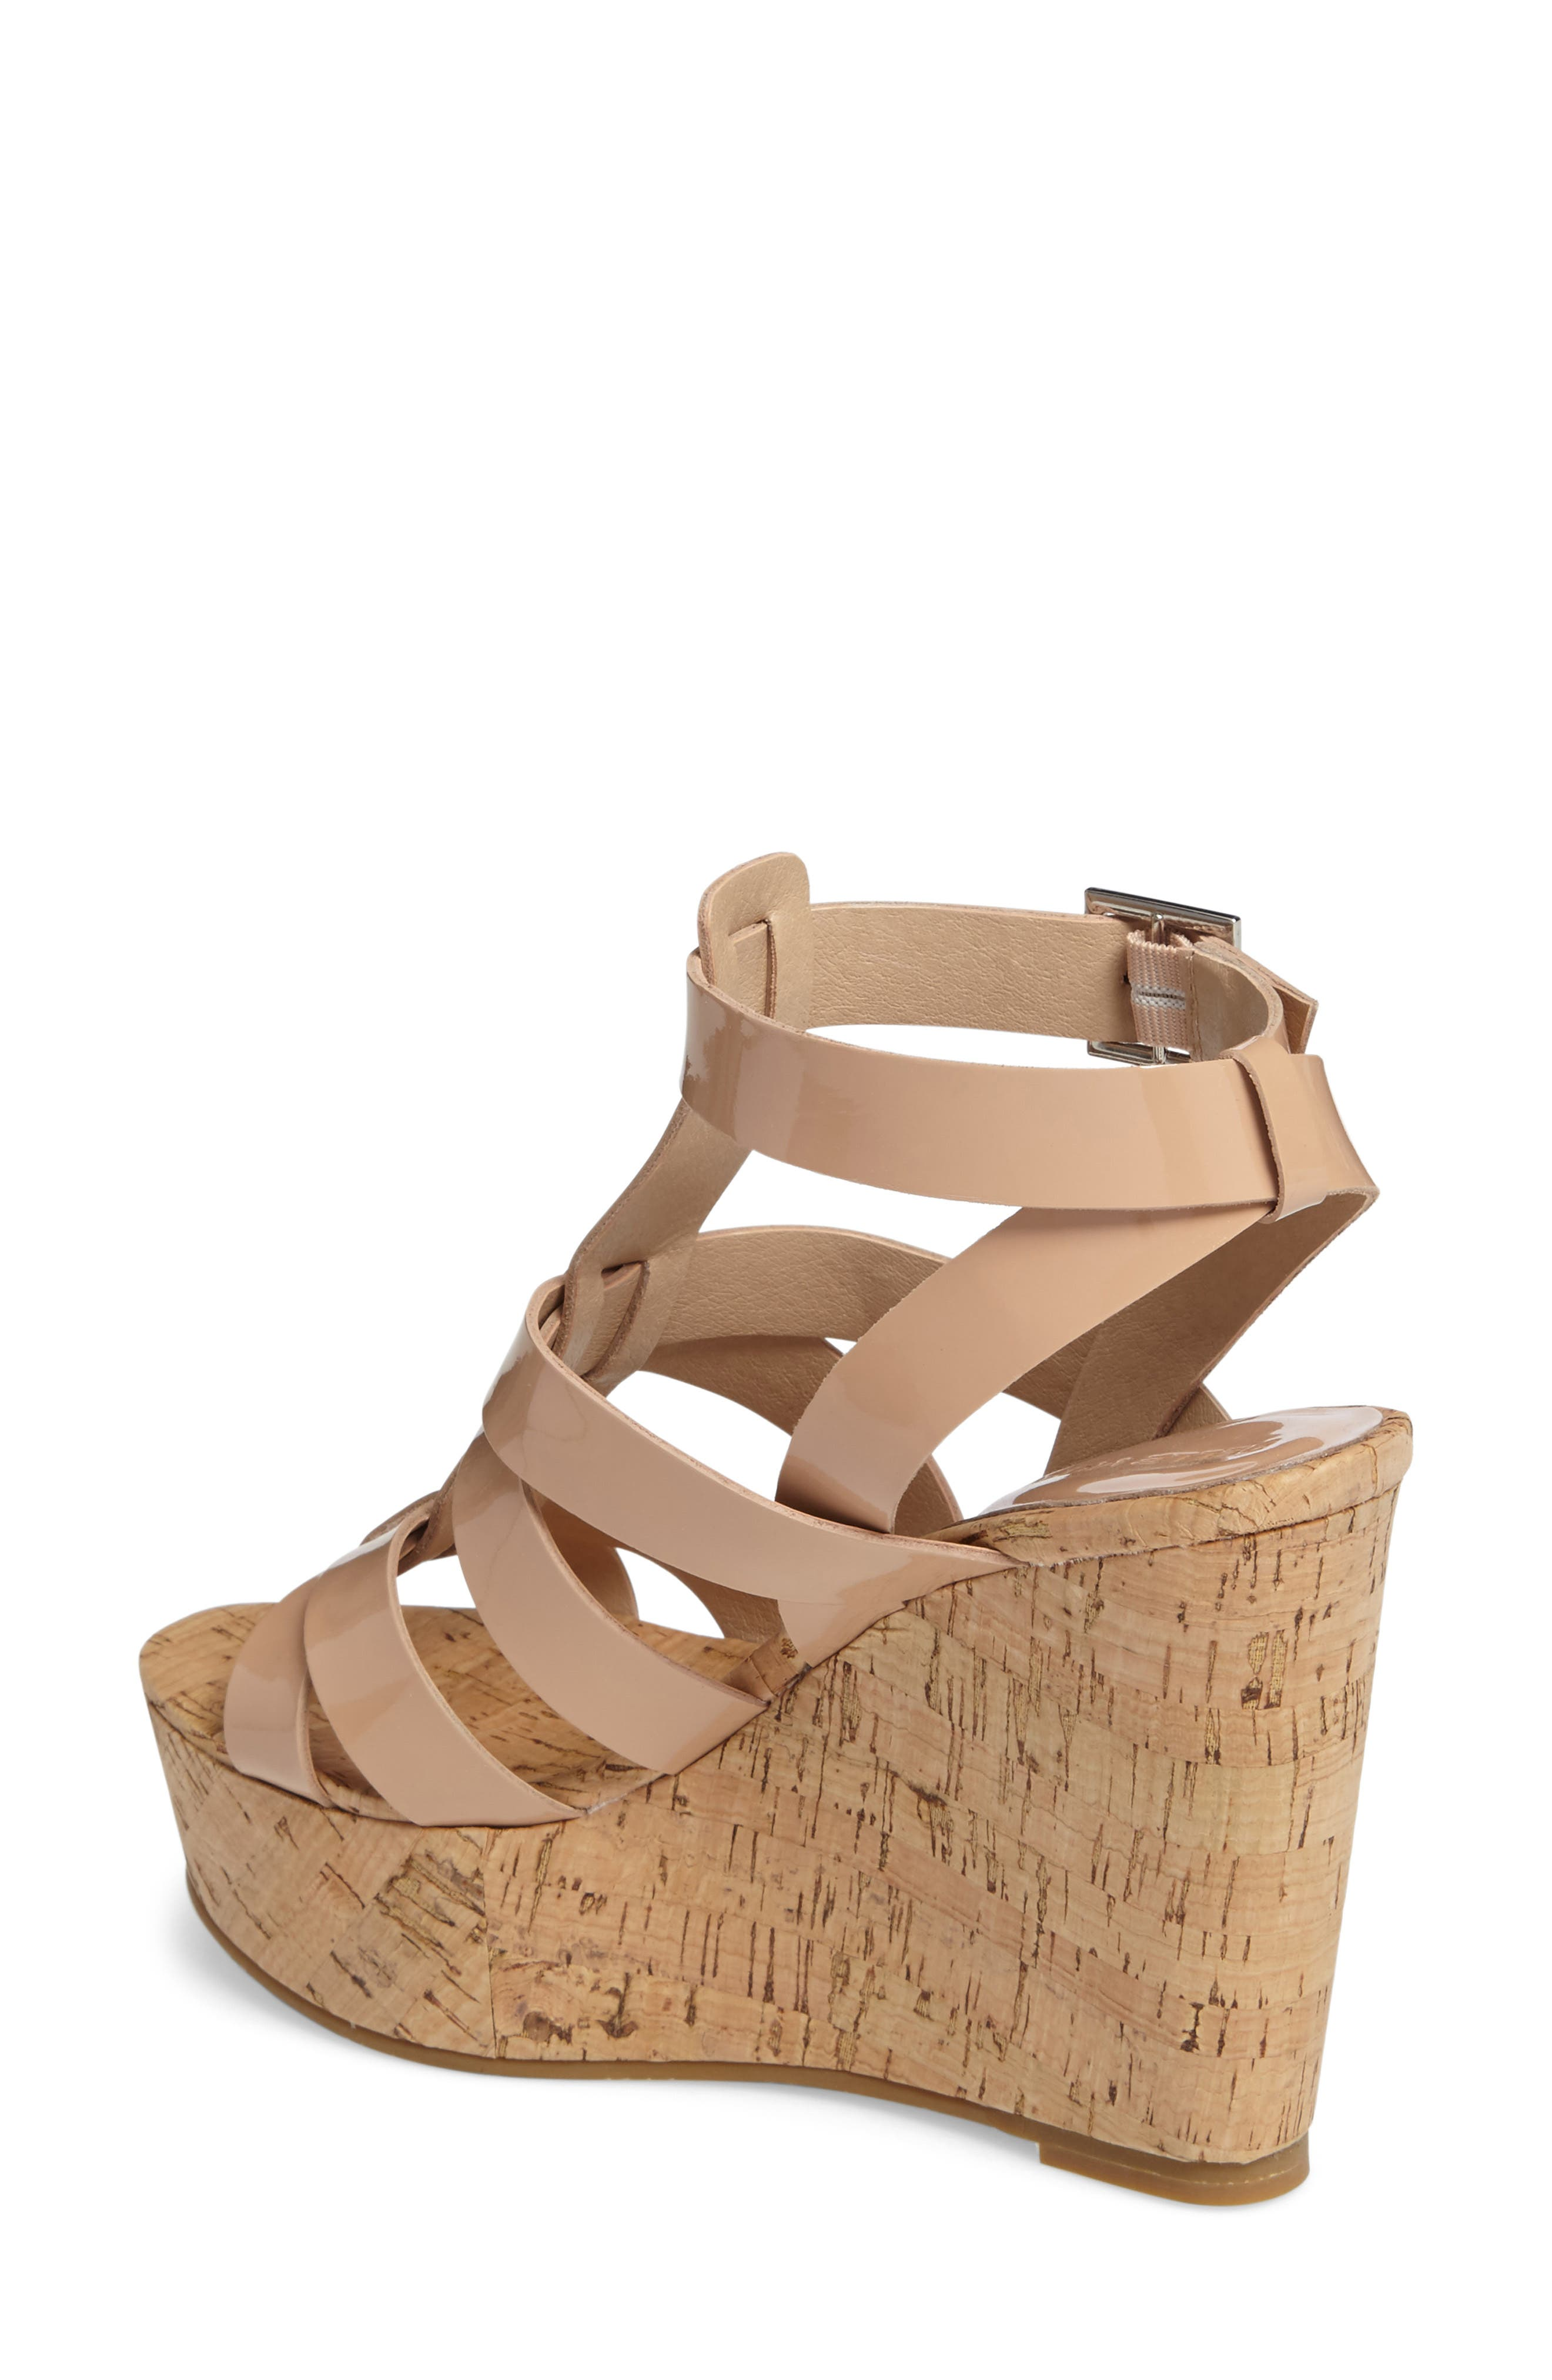 Rayjay Wedge Sandal,                             Alternate thumbnail 6, color,